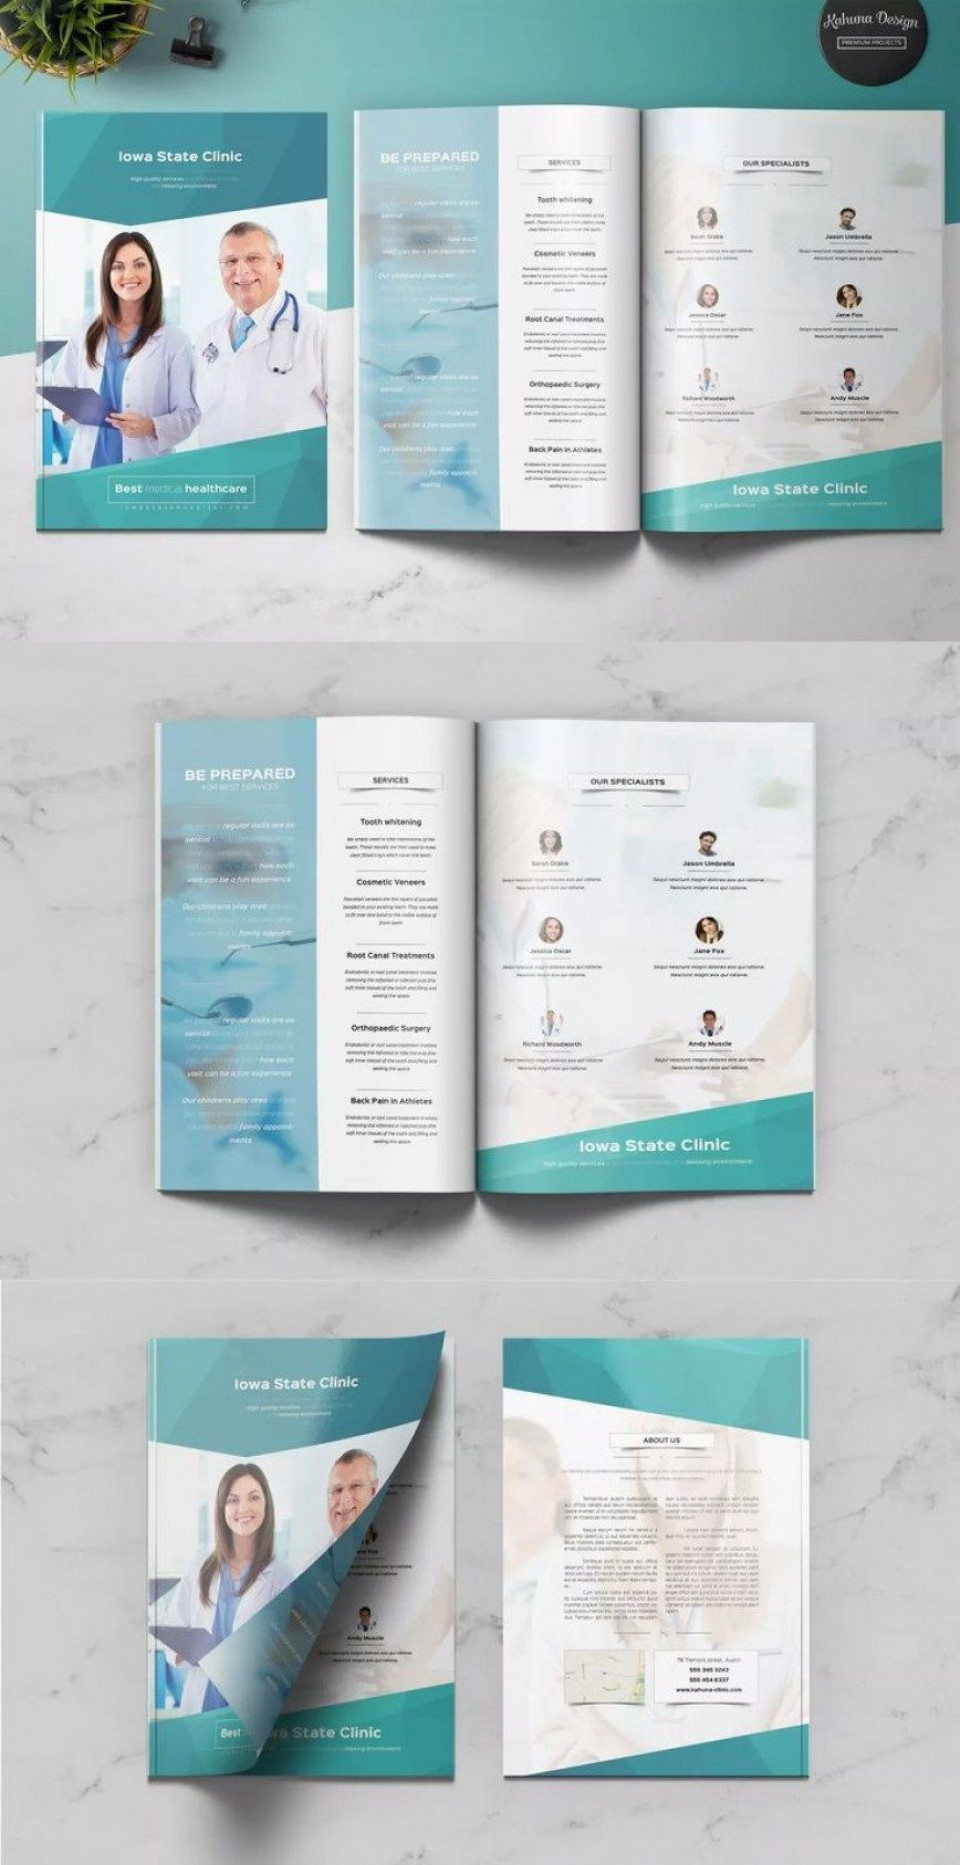 007 Remarkable Download Brochure Template For Microsoft Word 2007 High Def  Free960